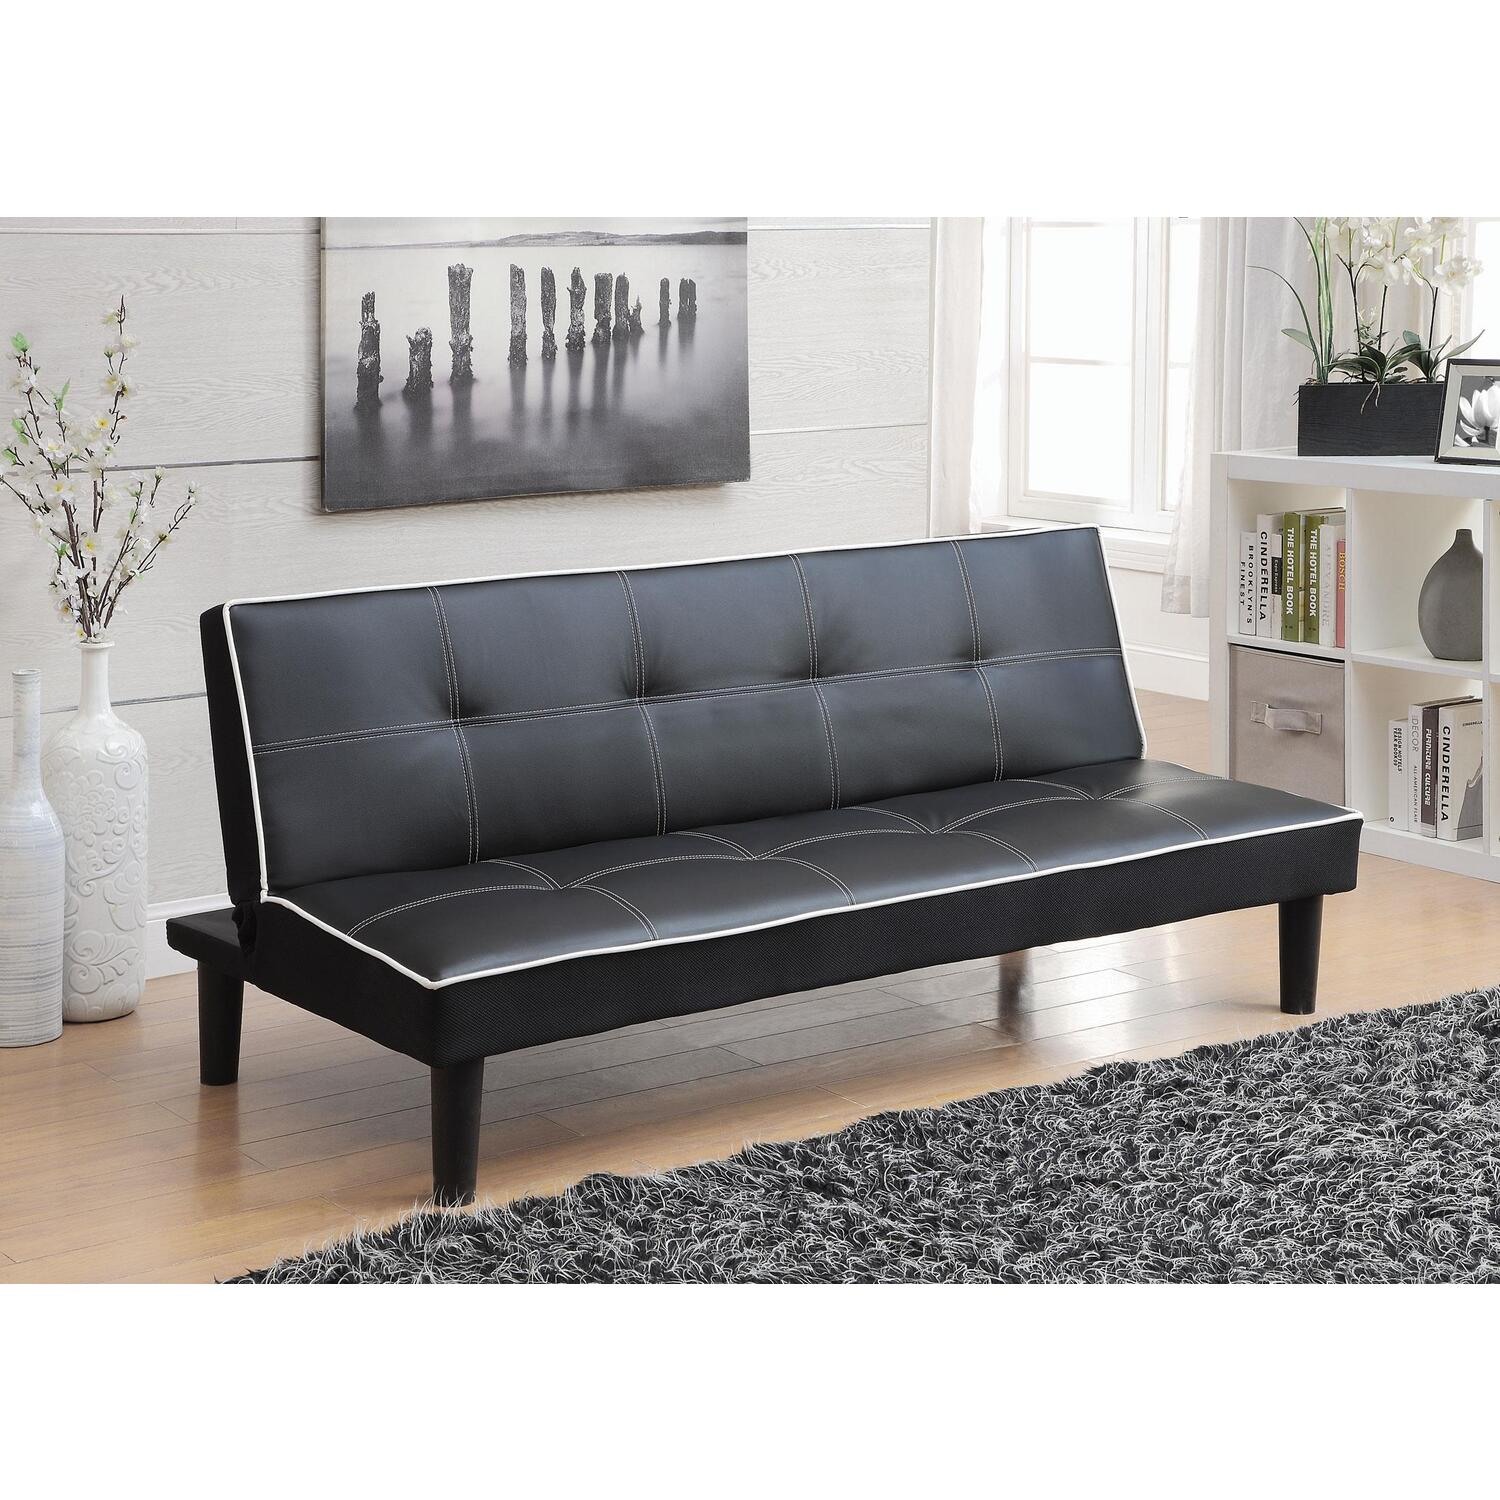 Fantastic Coaster Contemporary Black Faux Leather Sofa Bed Black Contemporary Black Caraccident5 Cool Chair Designs And Ideas Caraccident5Info